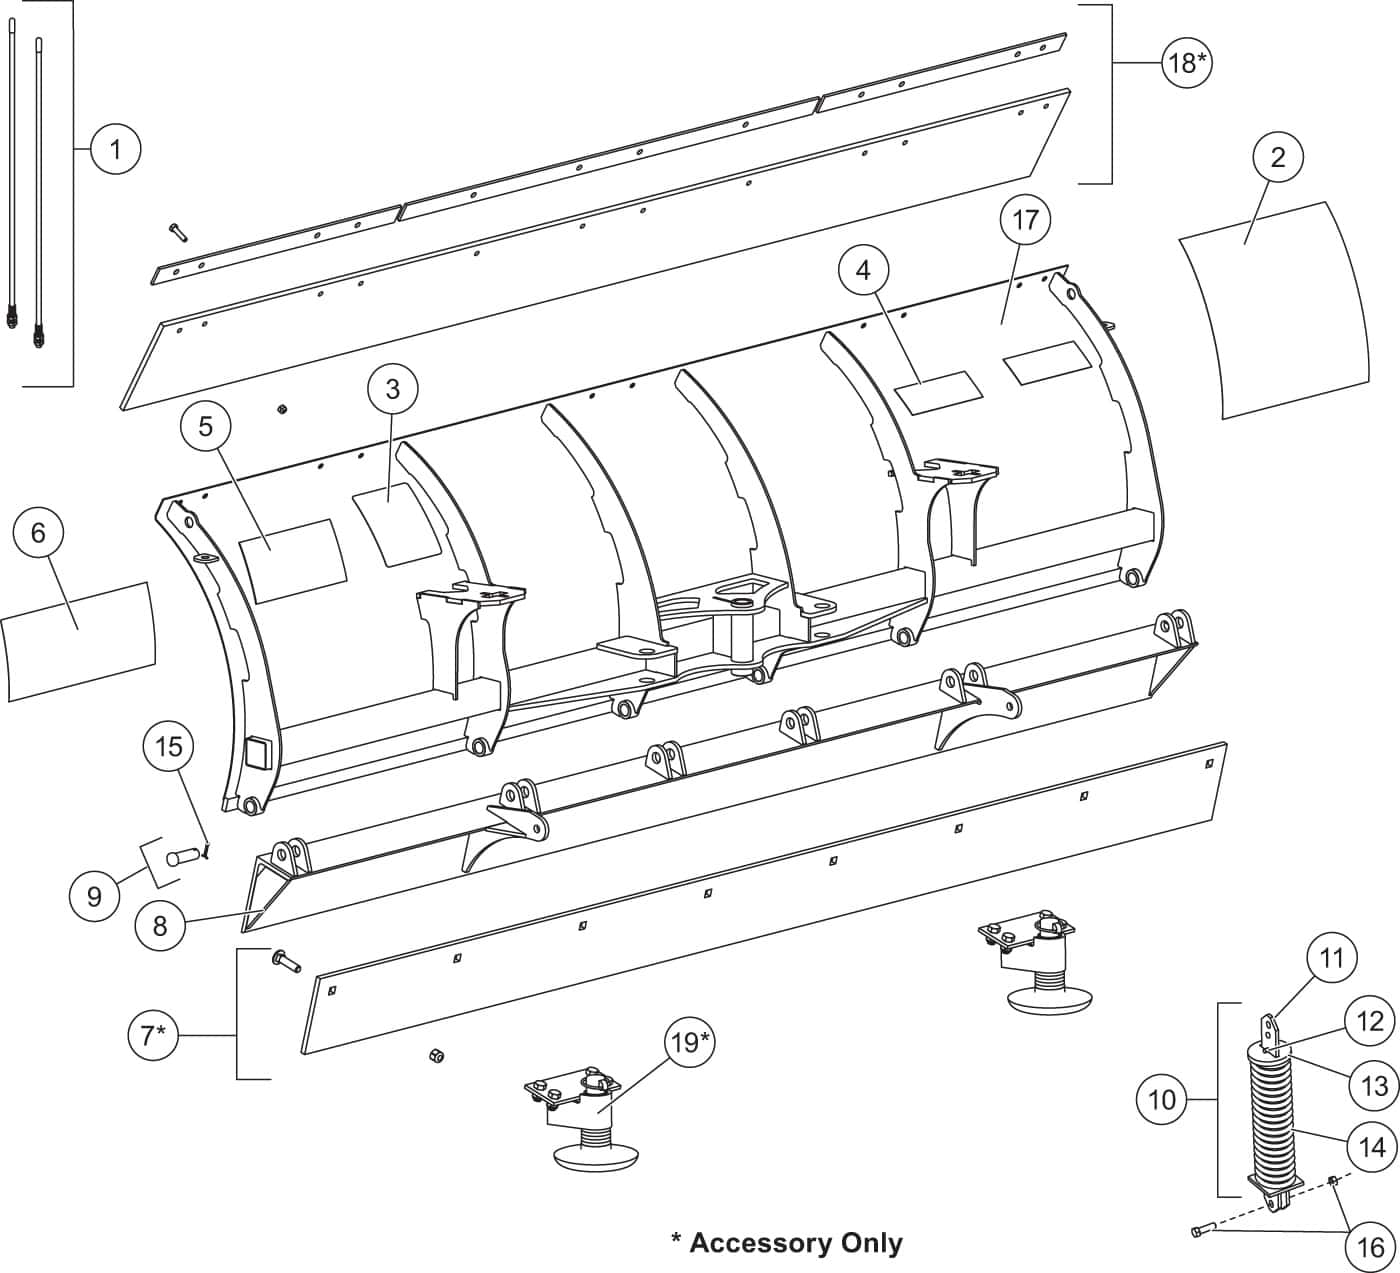 HT Series Blade Assembly Diagram